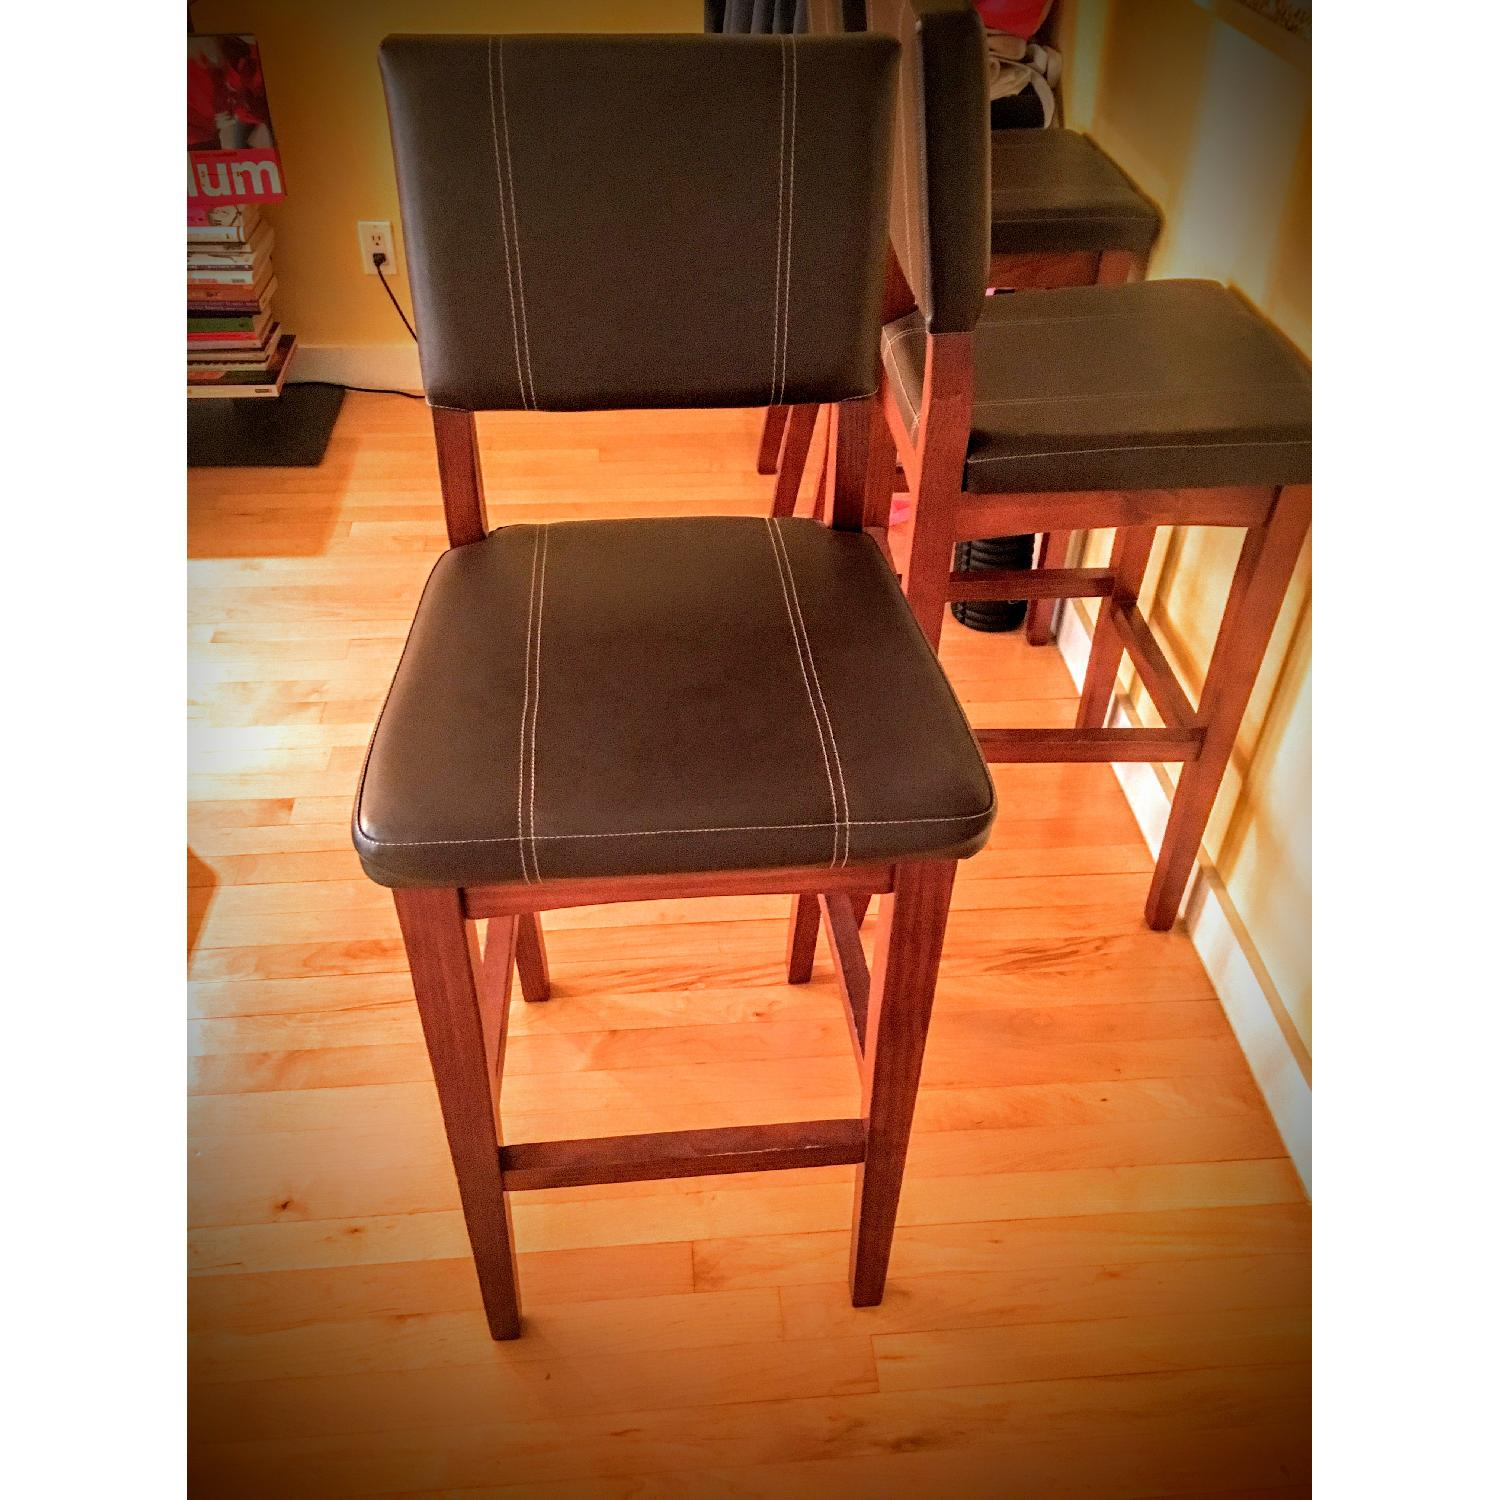 Leather High Bar Stools - image-1